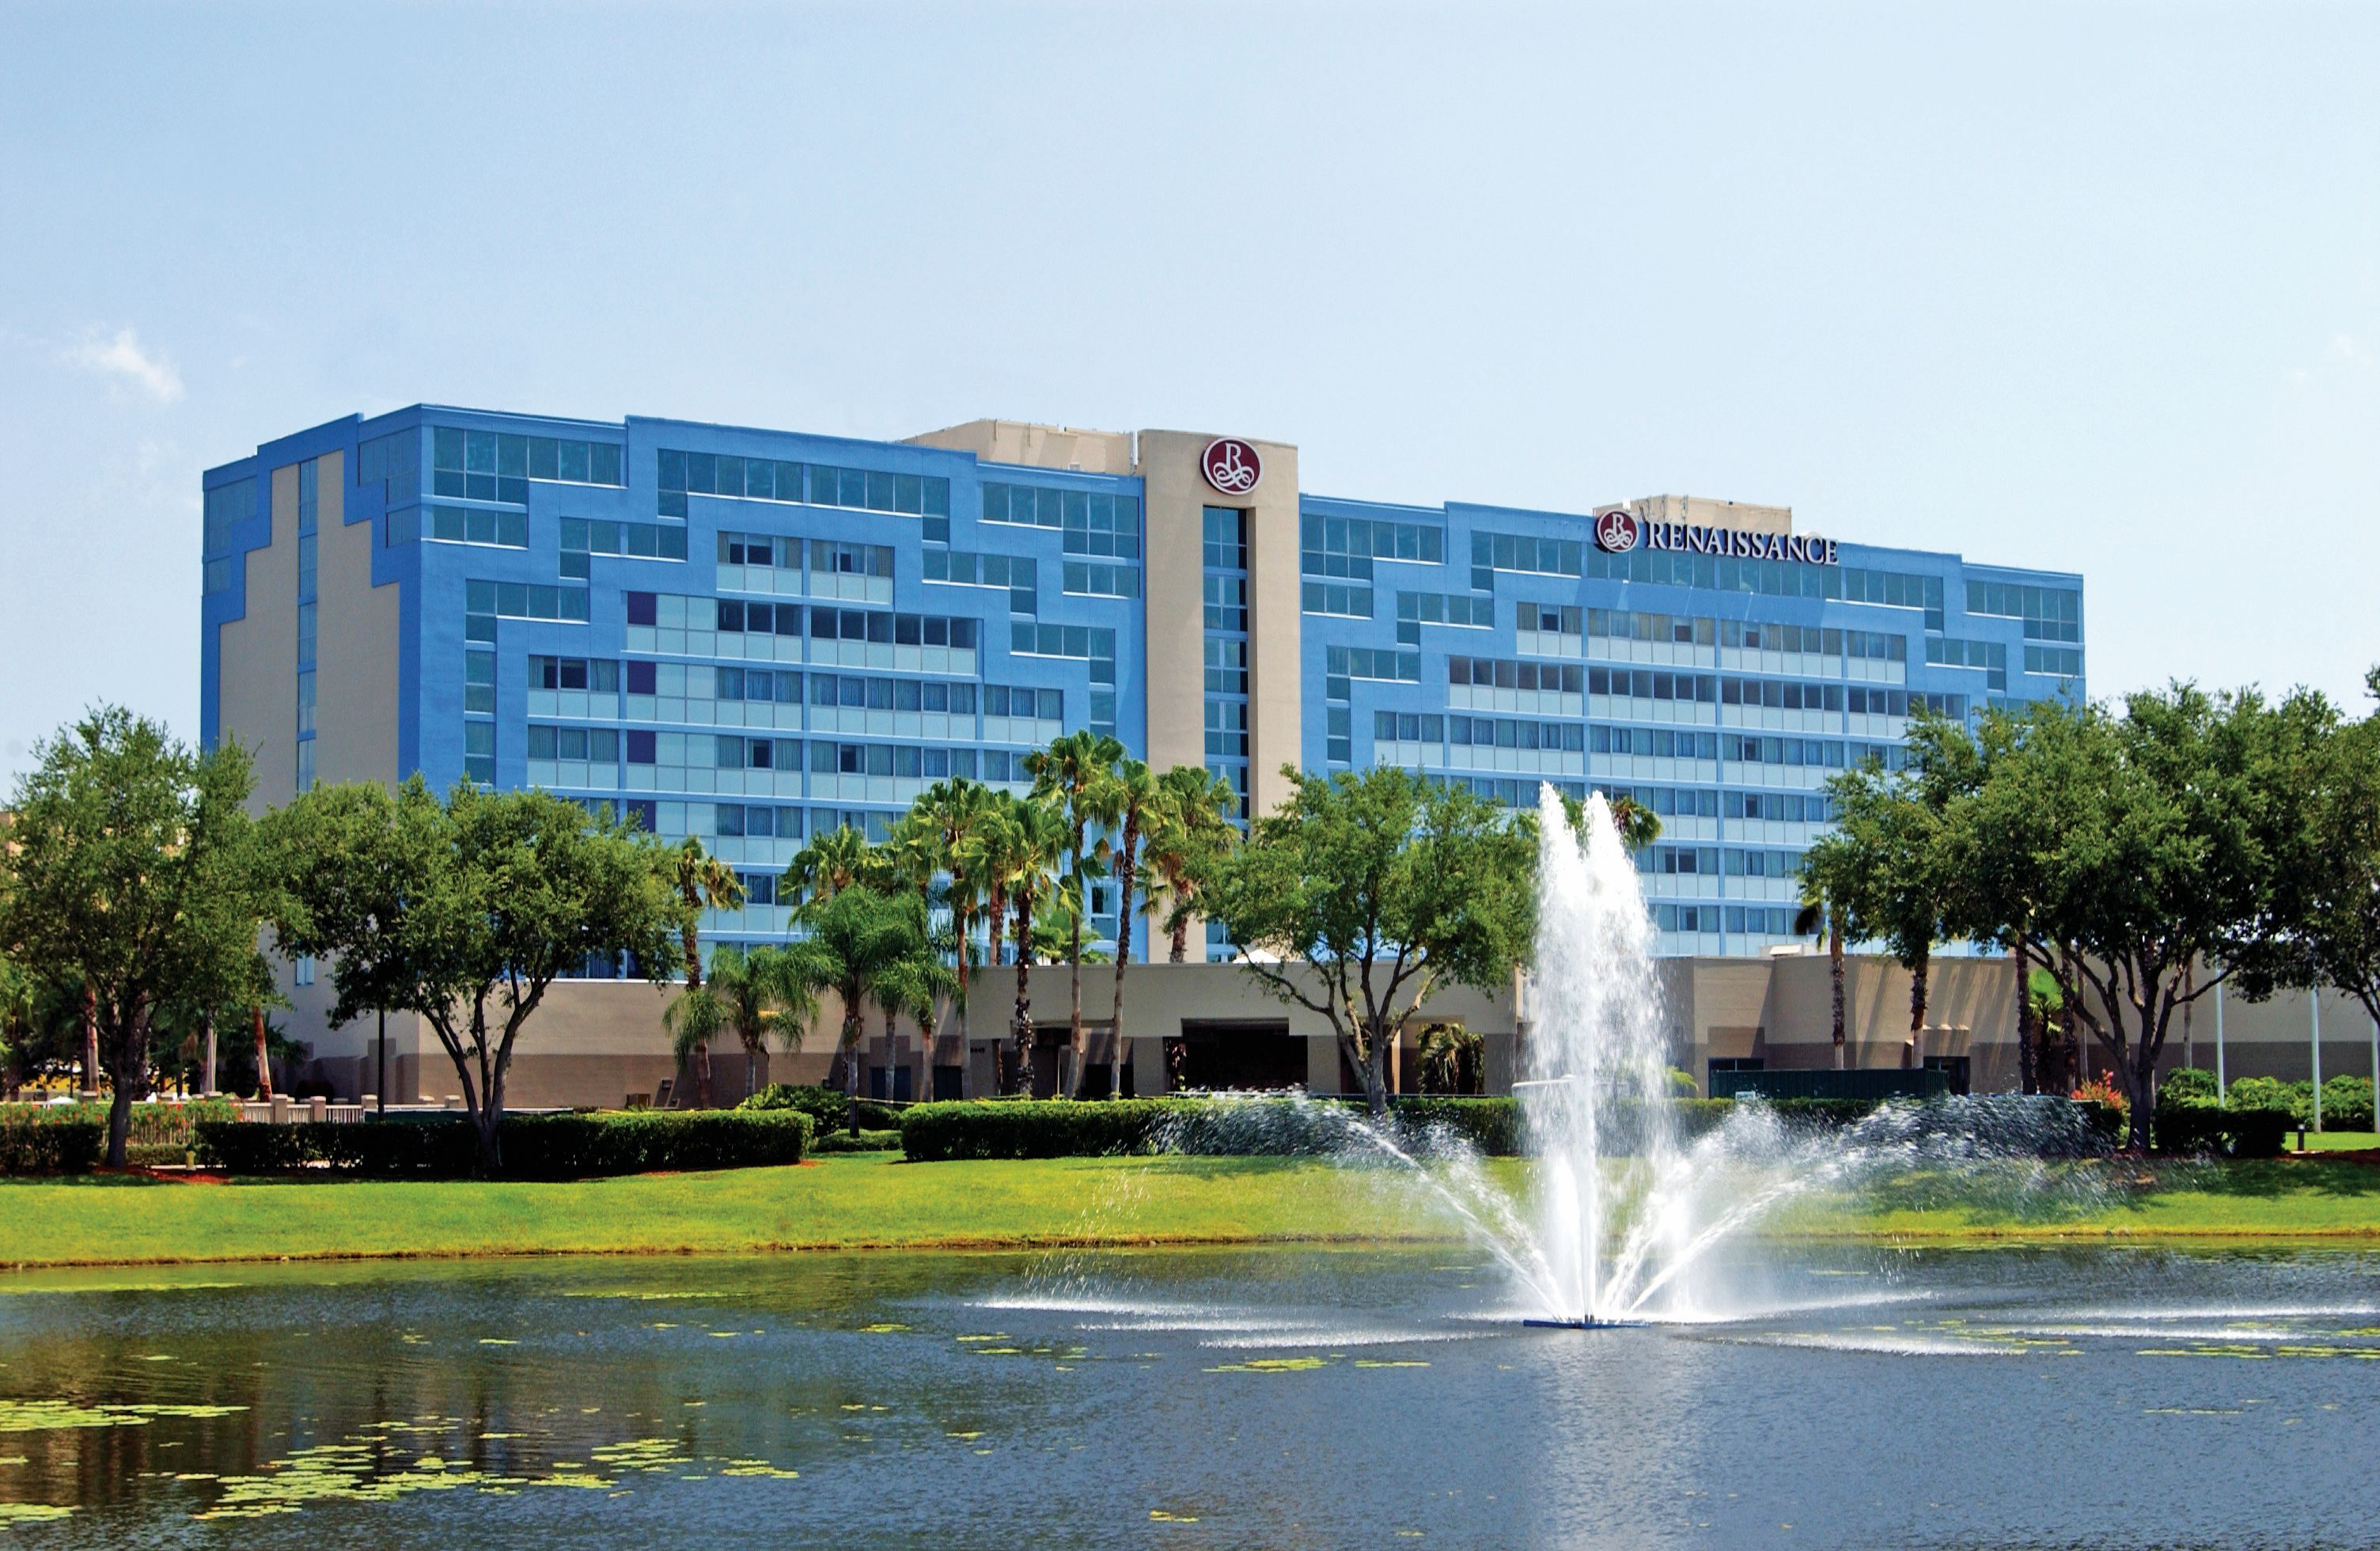 Experience Luxurious Modern Accommodations At Renaissance Orlando Airport Hotel Boasting First Cl Guest